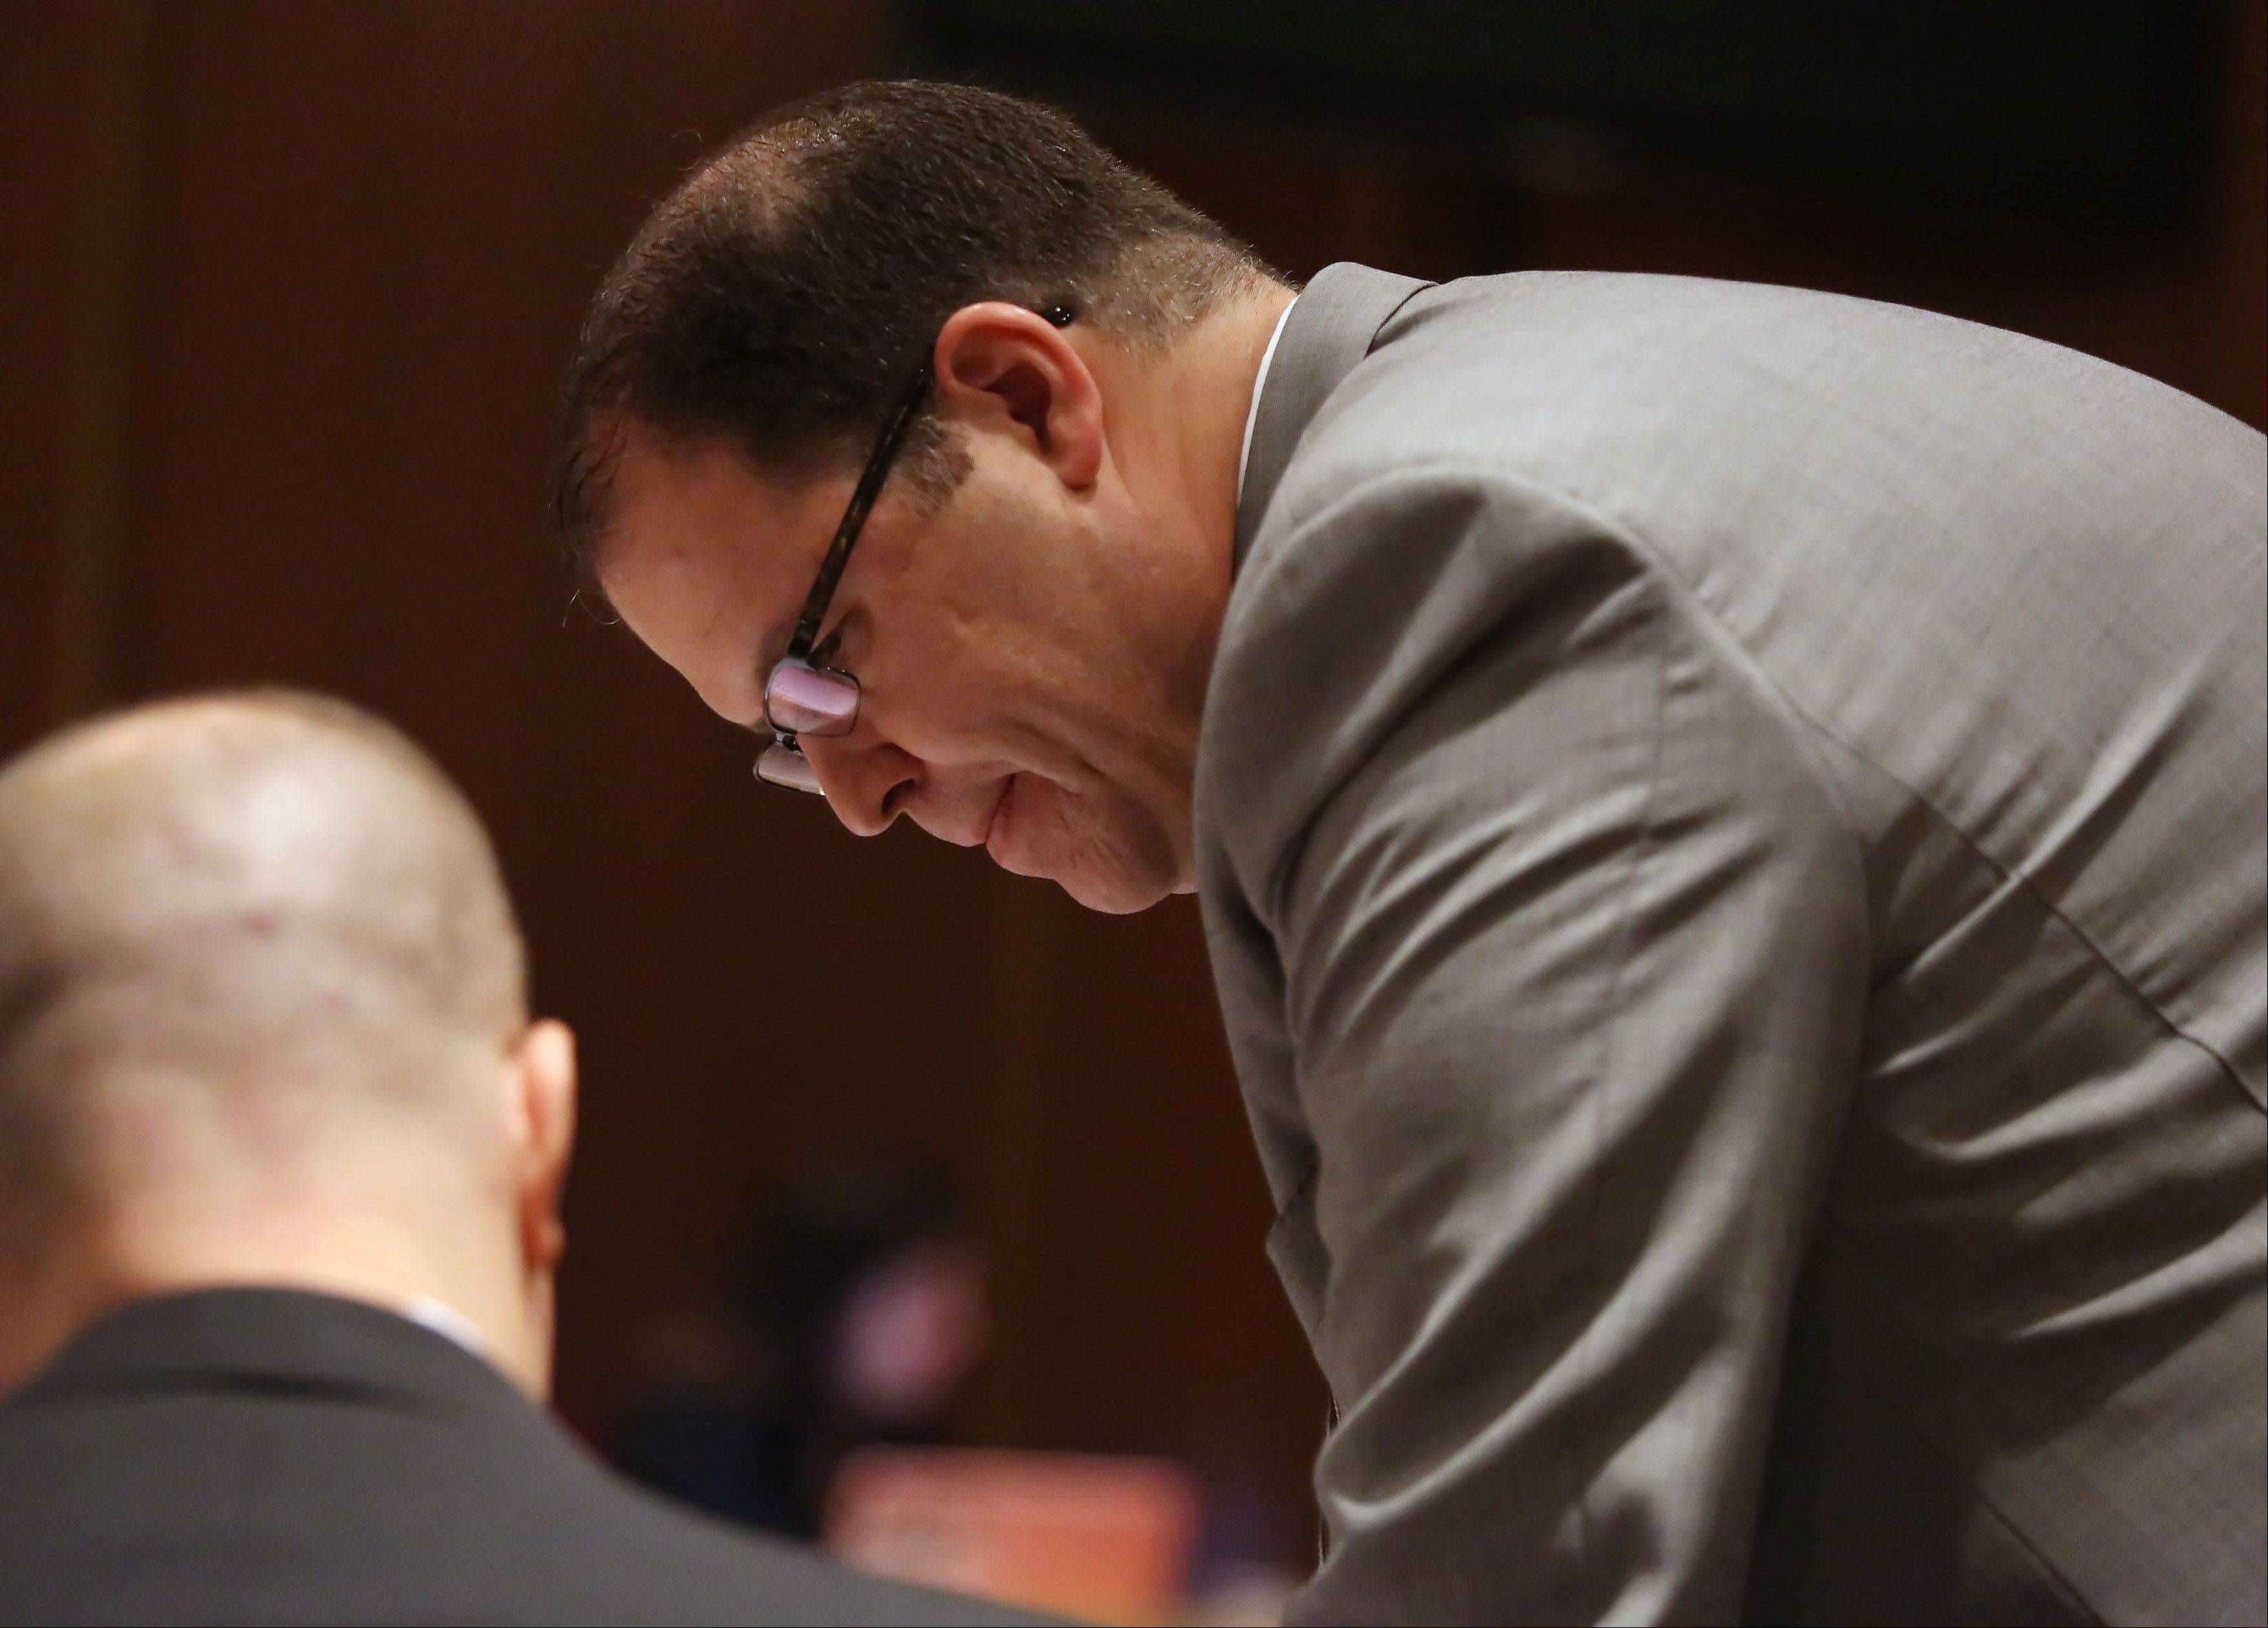 Lake County Assistant State's Attorney Ari Fisz discusses evidence during the murder trial of Montago Suggs of Kenosha, Wis., Tuesday at the Lake County courthouse in Waukegan. Suggs is accused of killing Melinda Morrell of Round Lake Park during a robbery at a check cashing store in Waukegan in 2007.